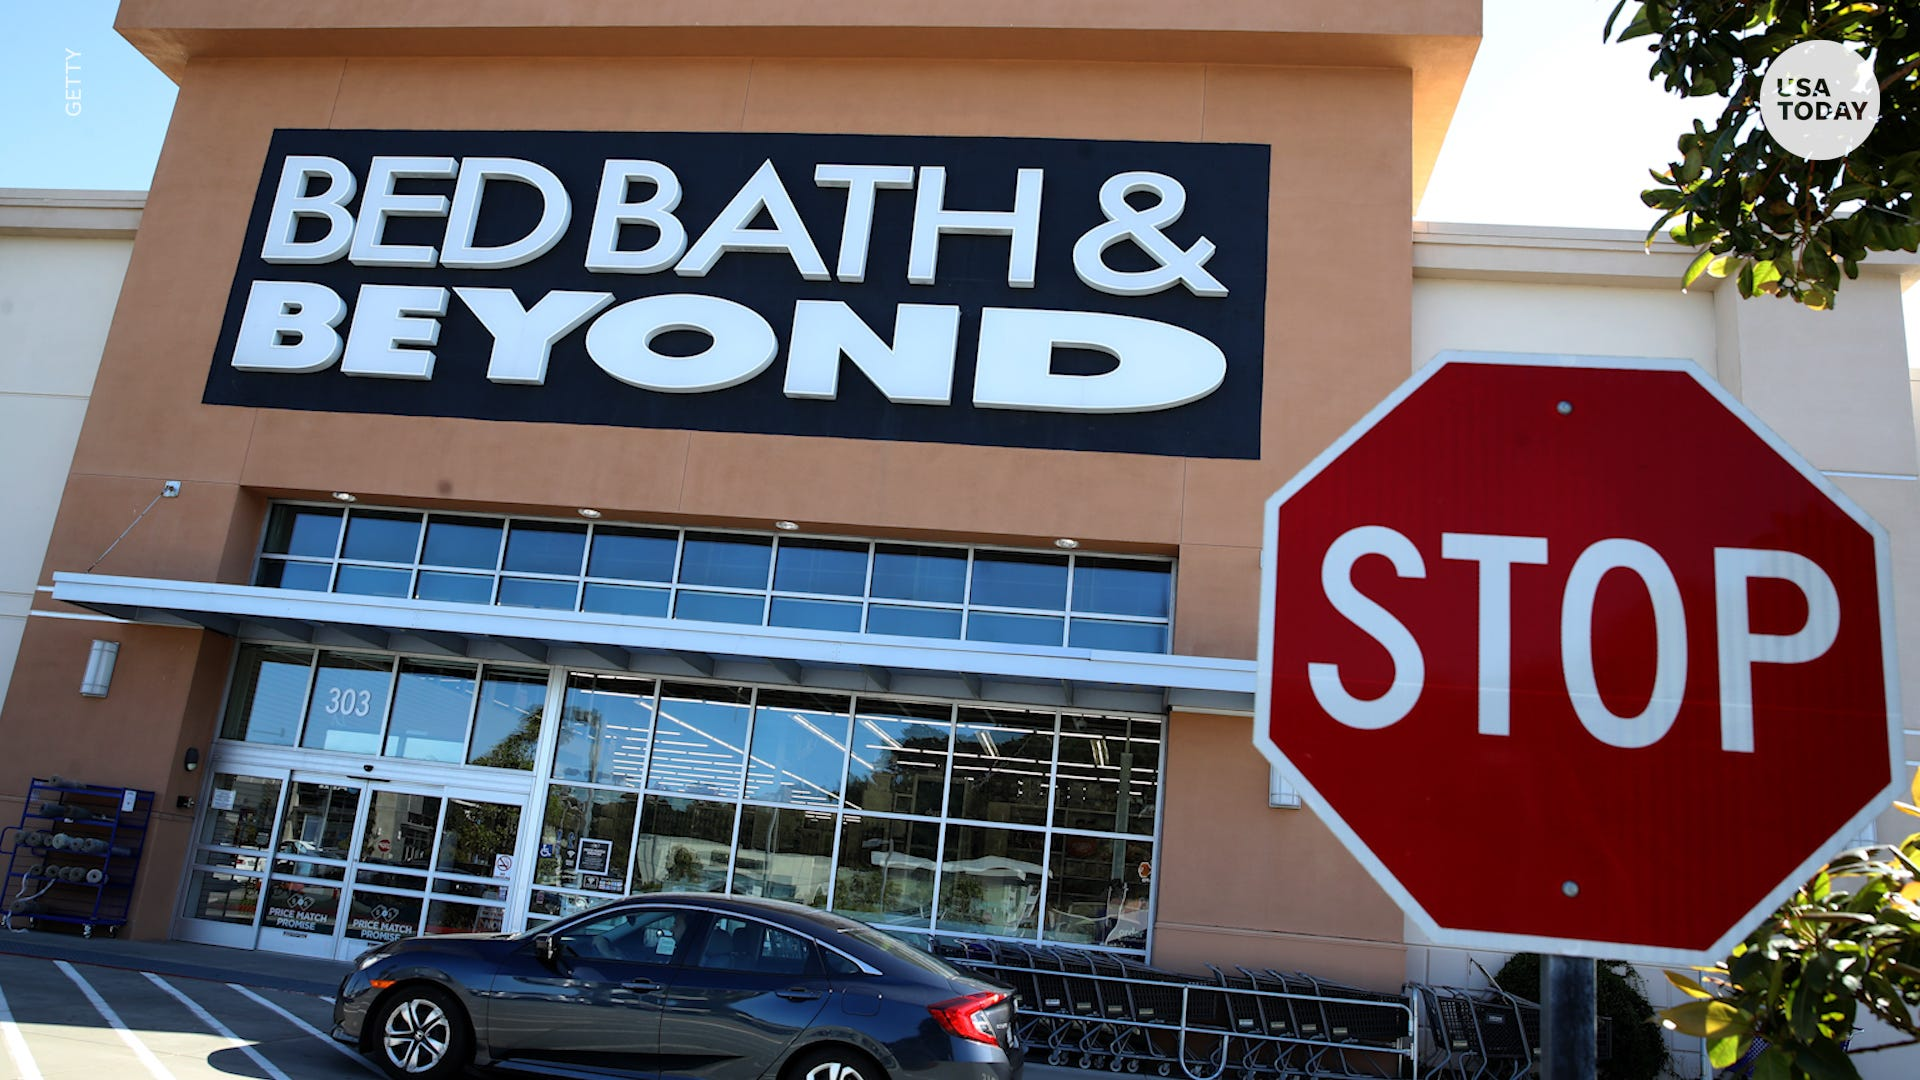 Awe Inspiring Dozens Of Bed Bath Beyond Stores Projected To Close Their Doors By 2020 Alphanode Cool Chair Designs And Ideas Alphanodeonline